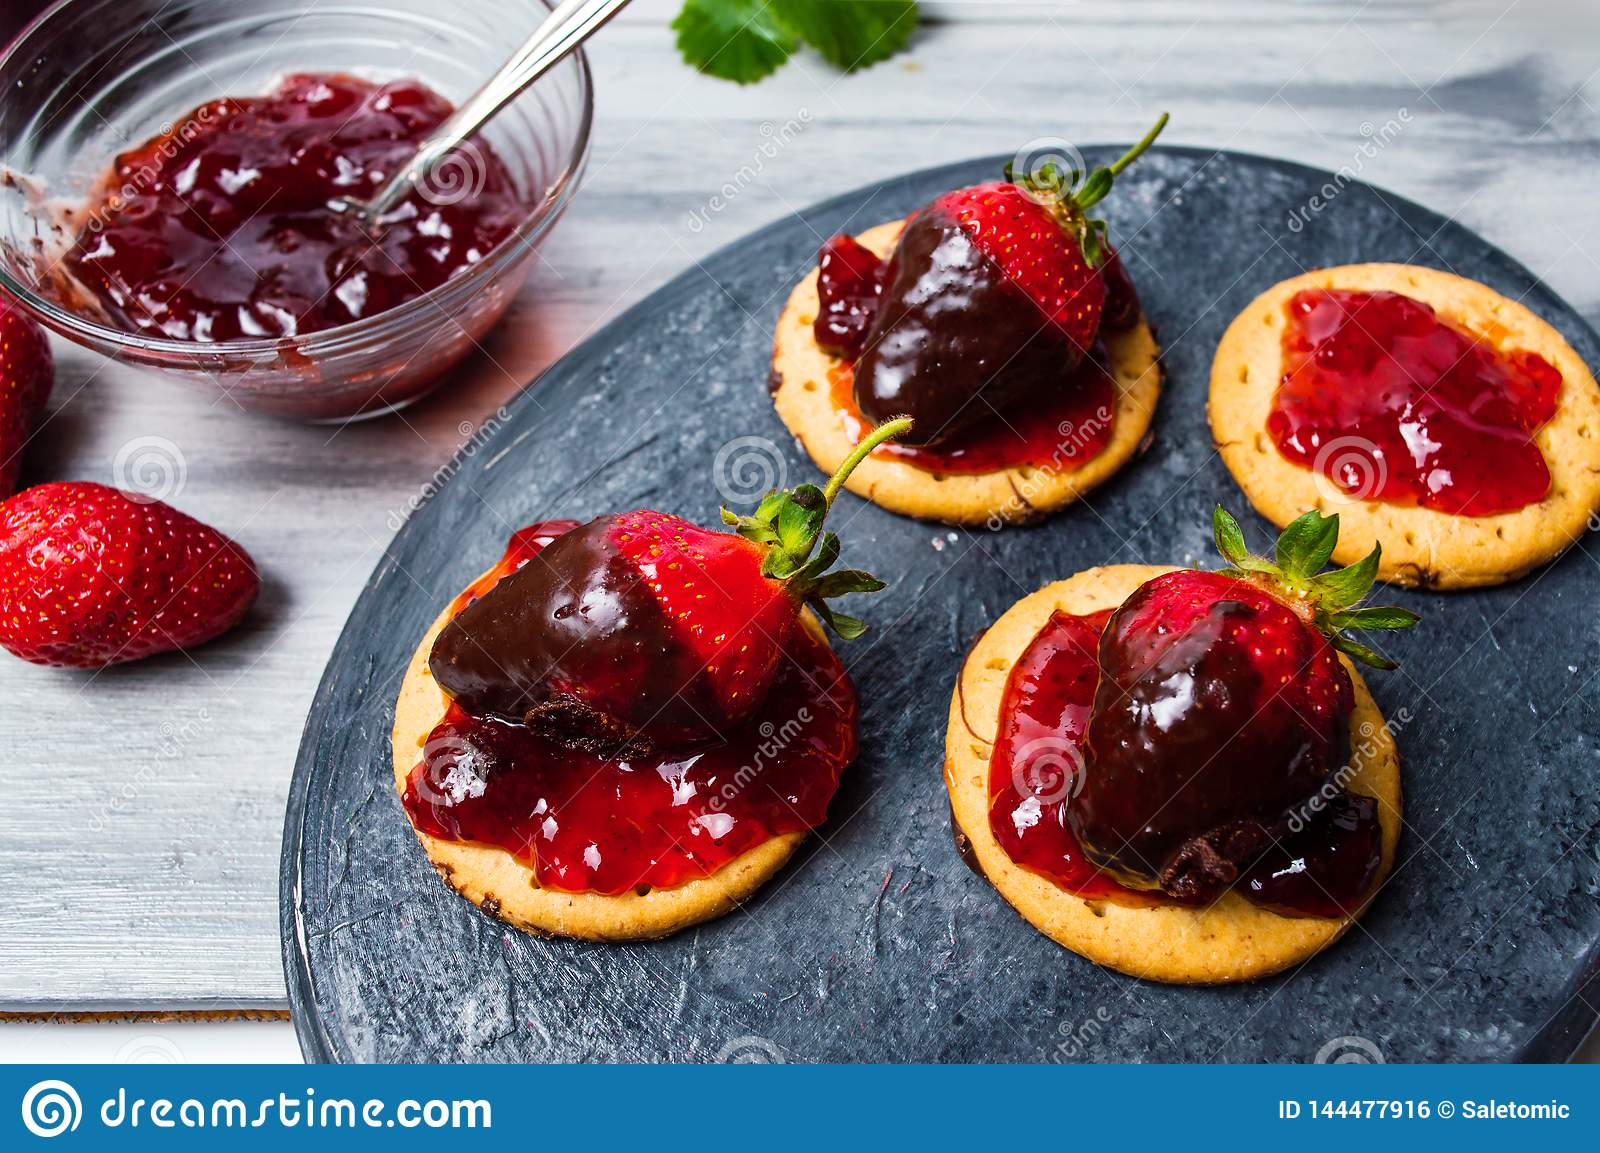 Strawberry dessert on a biscuit with jam